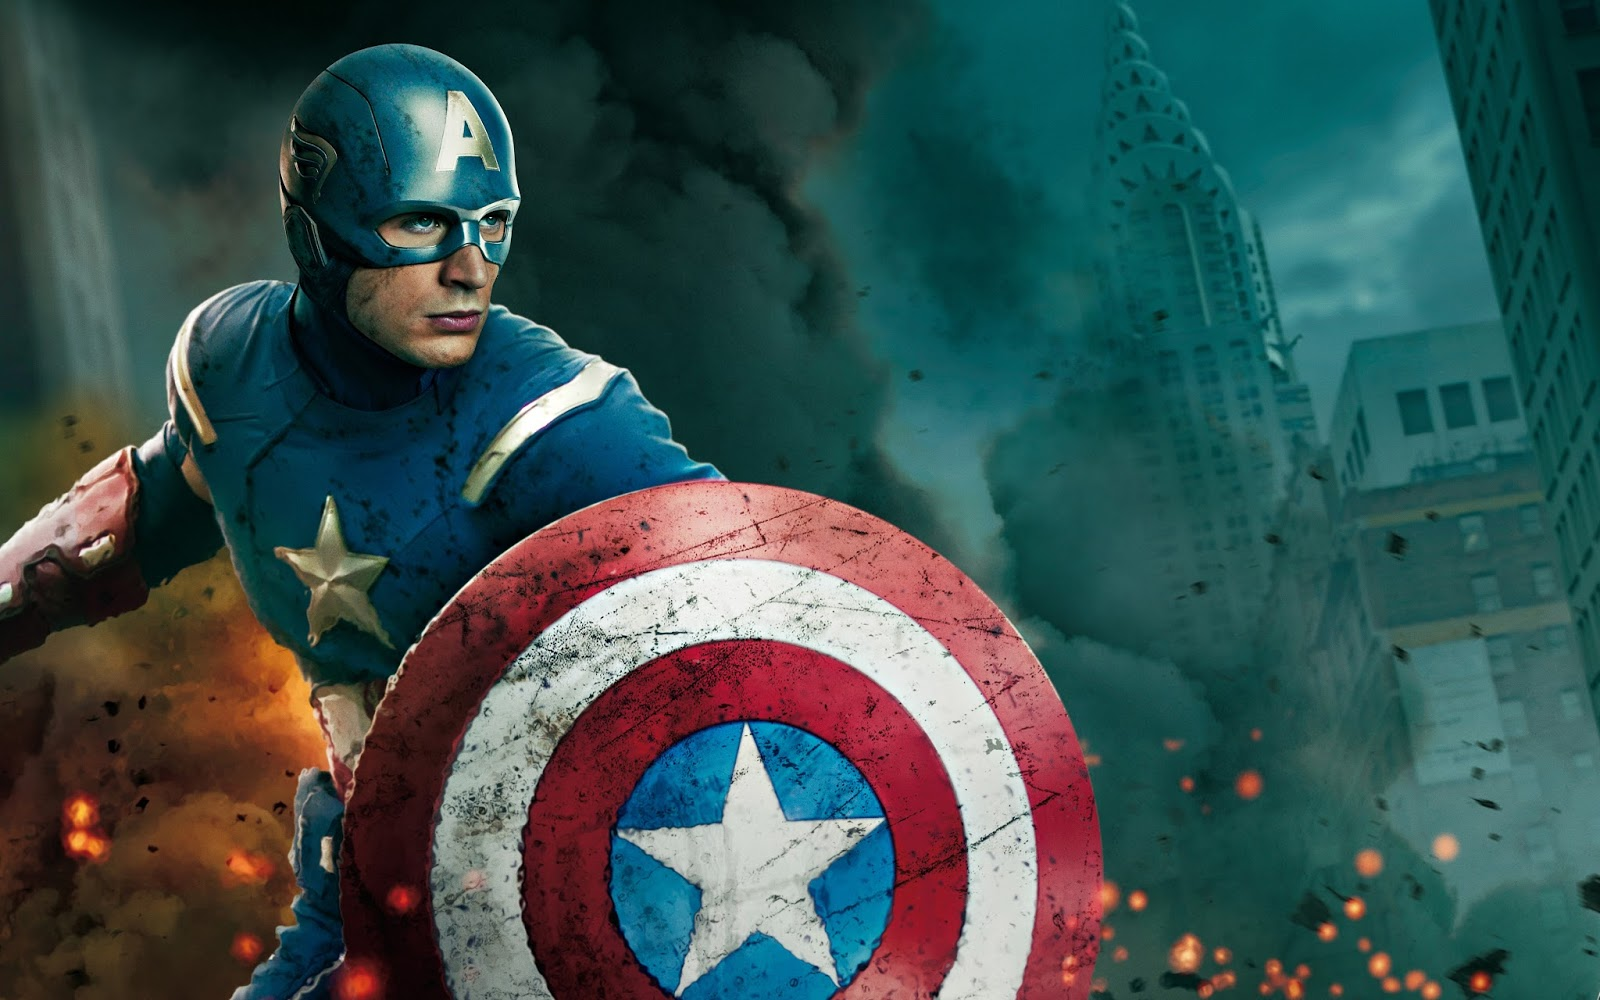 The First Soldier Captain America Wallpaper